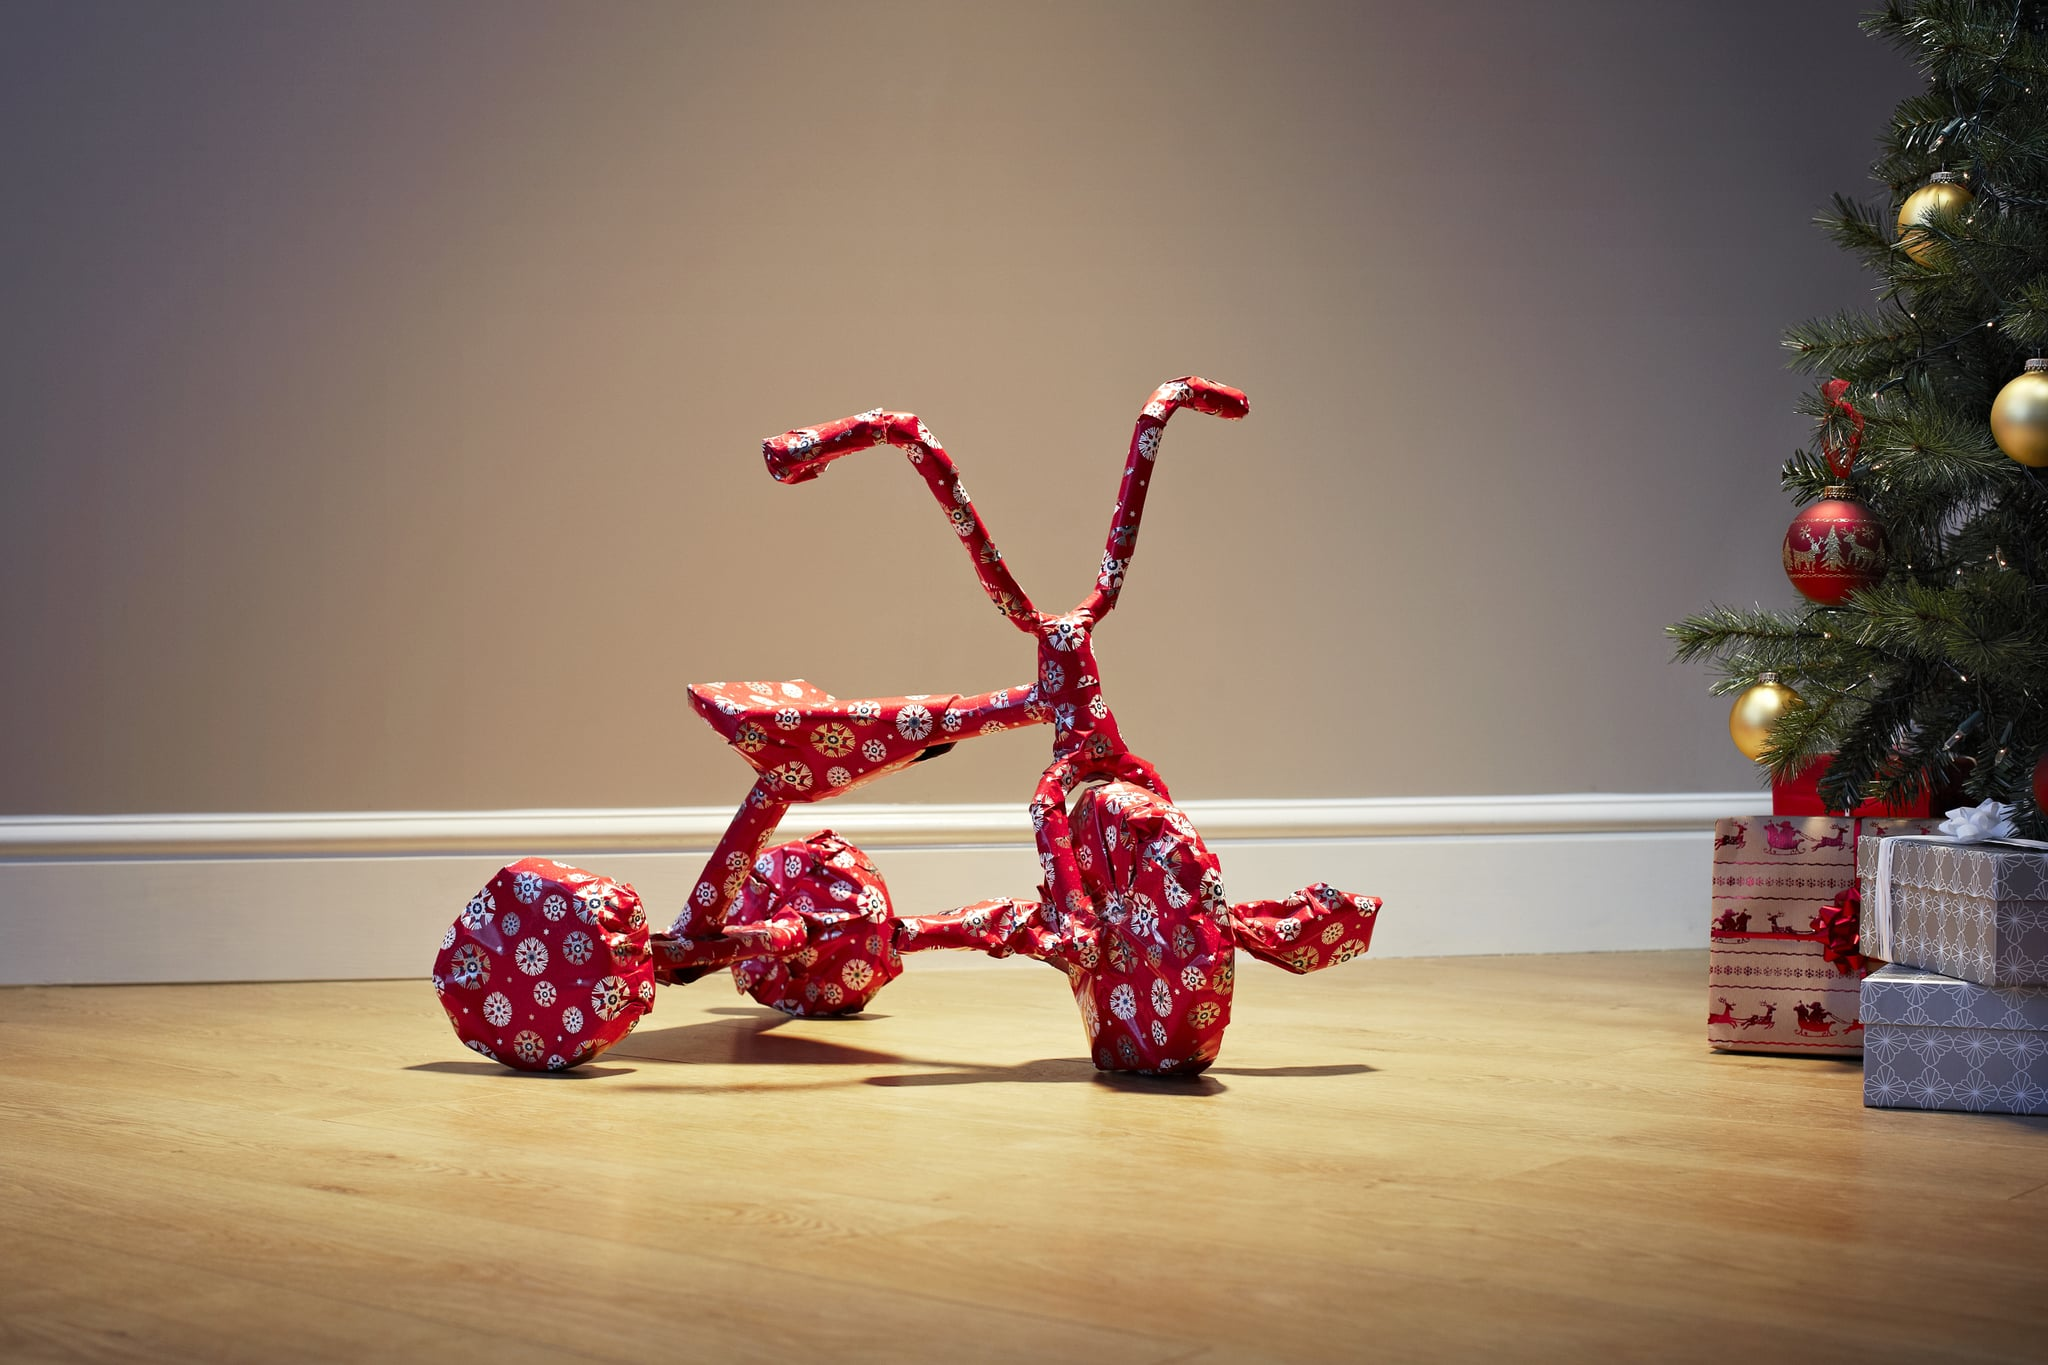 Child's bicycle wrapped in Christmas paper on floor next to christmas tree and presents